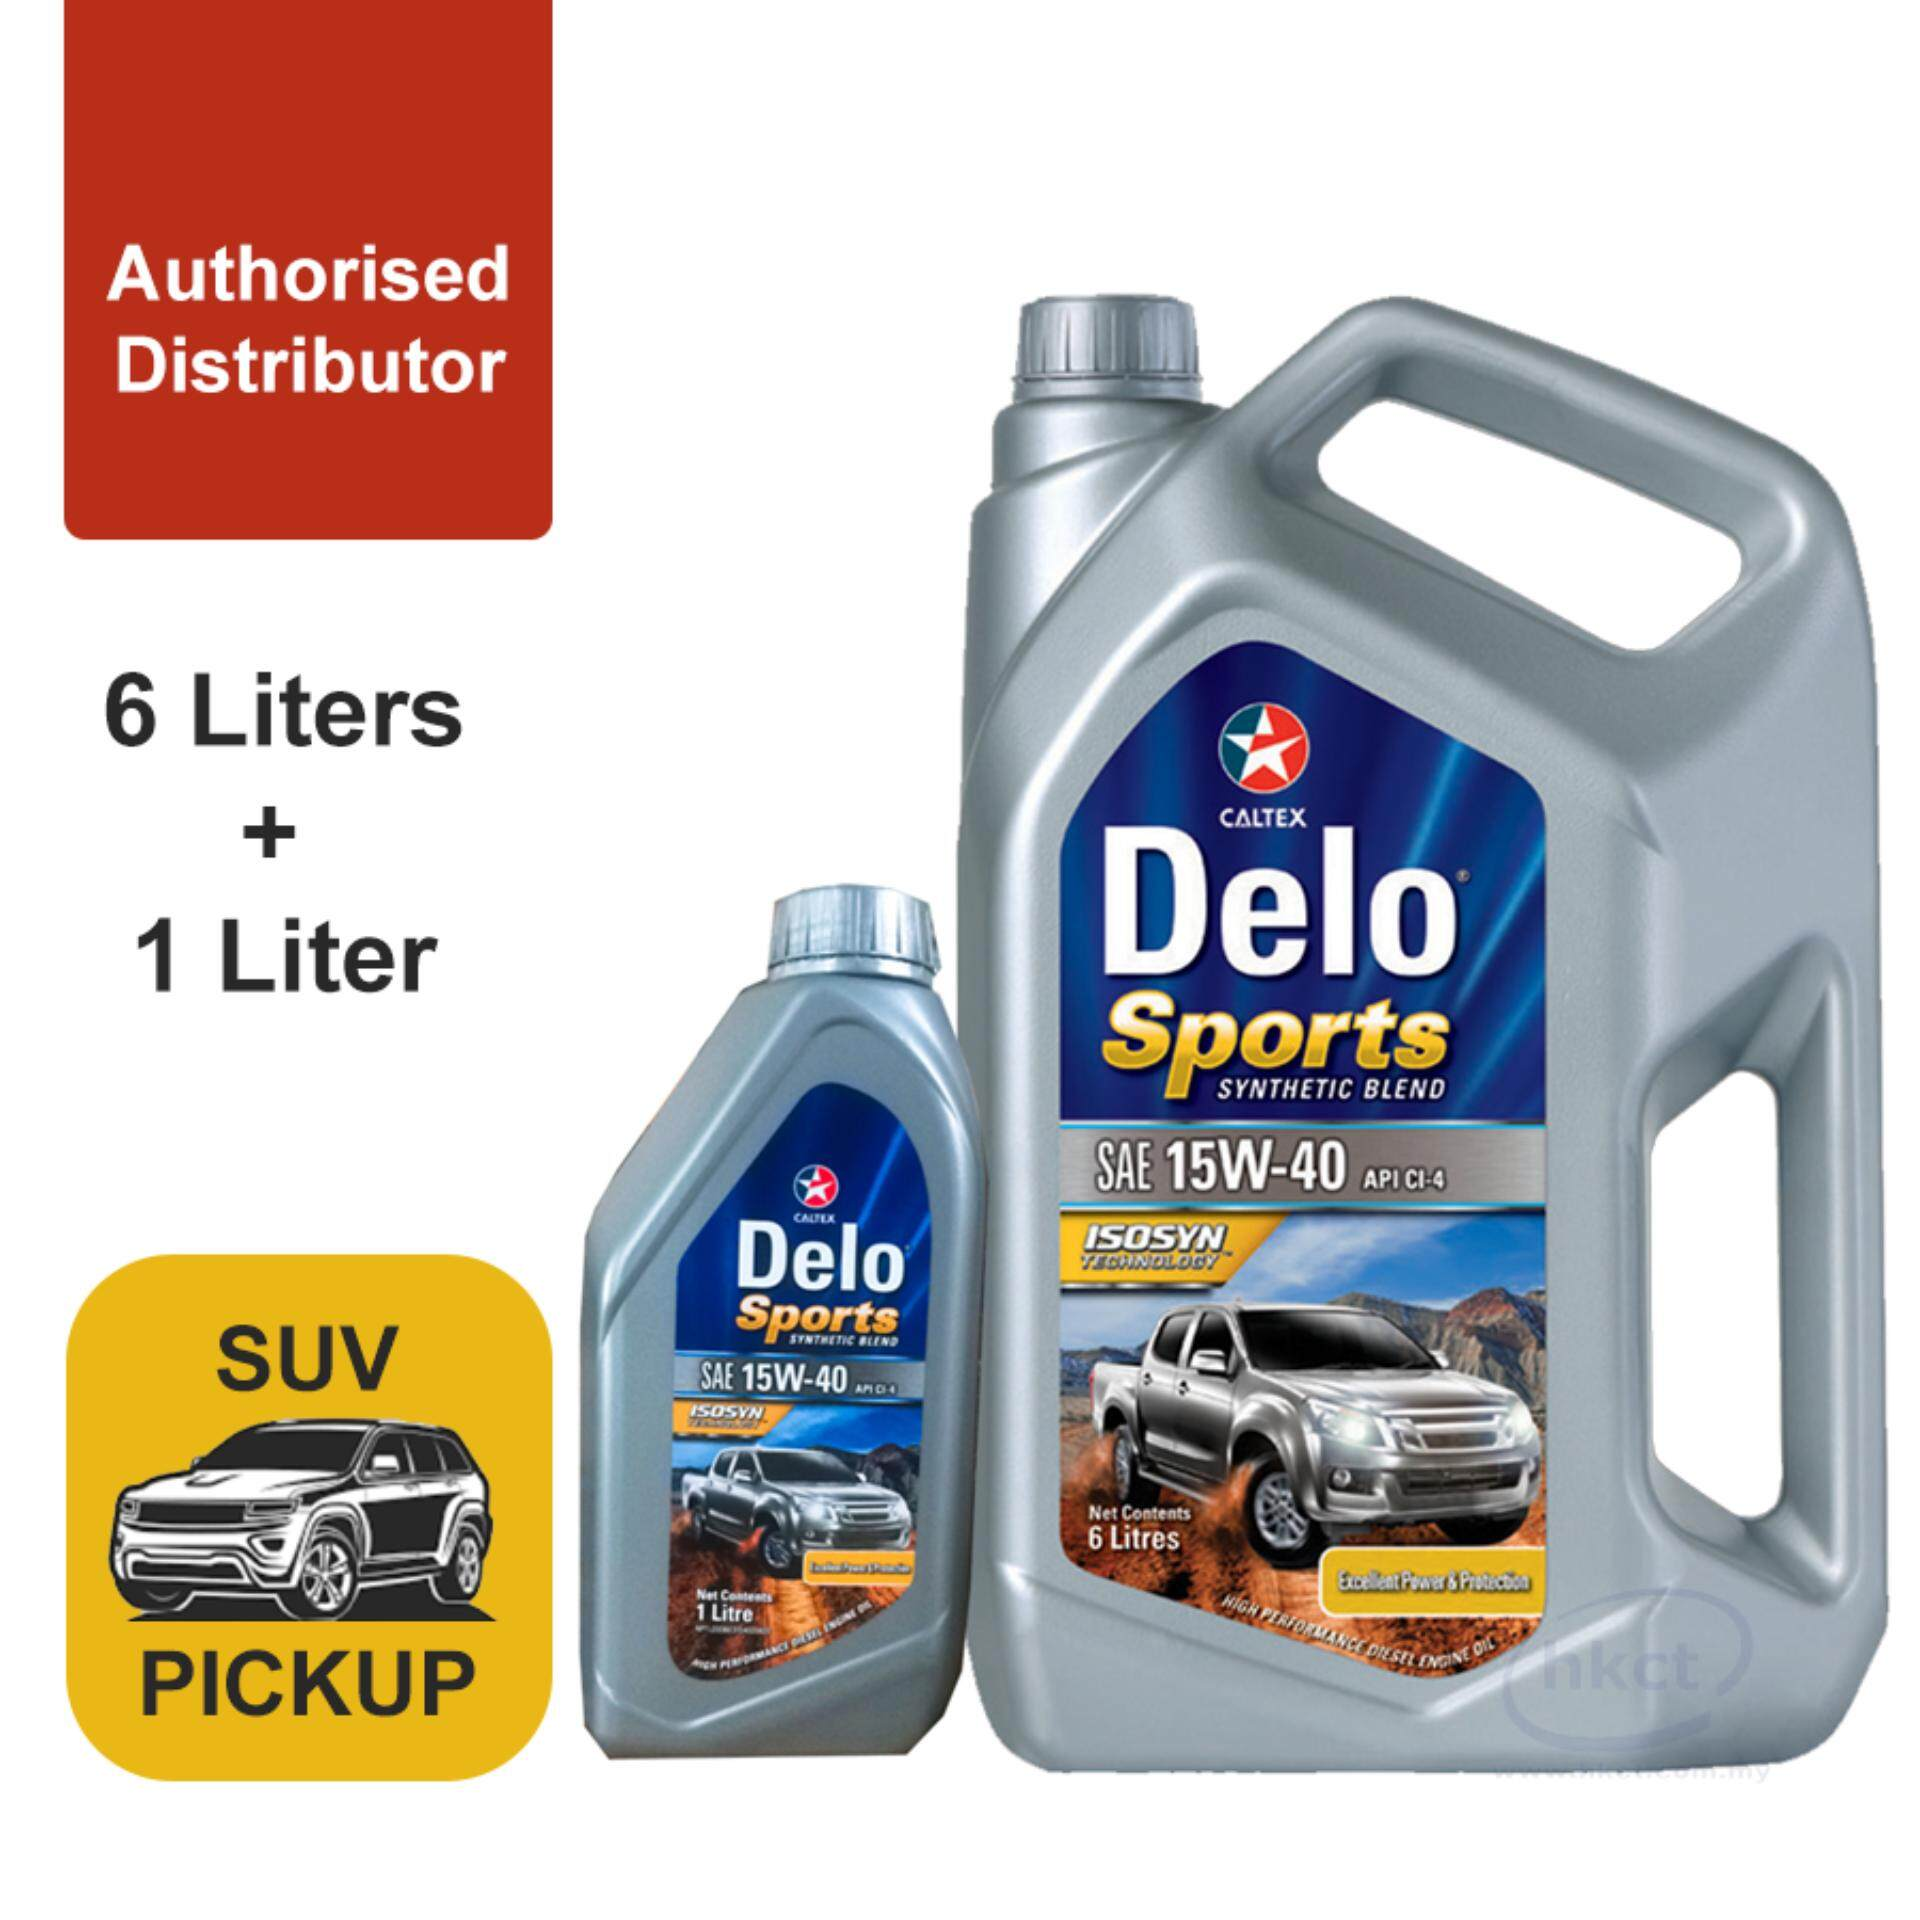 CALTEX Delo (R) Sports Synthetic Blend SAE 15W-40 API CI-4